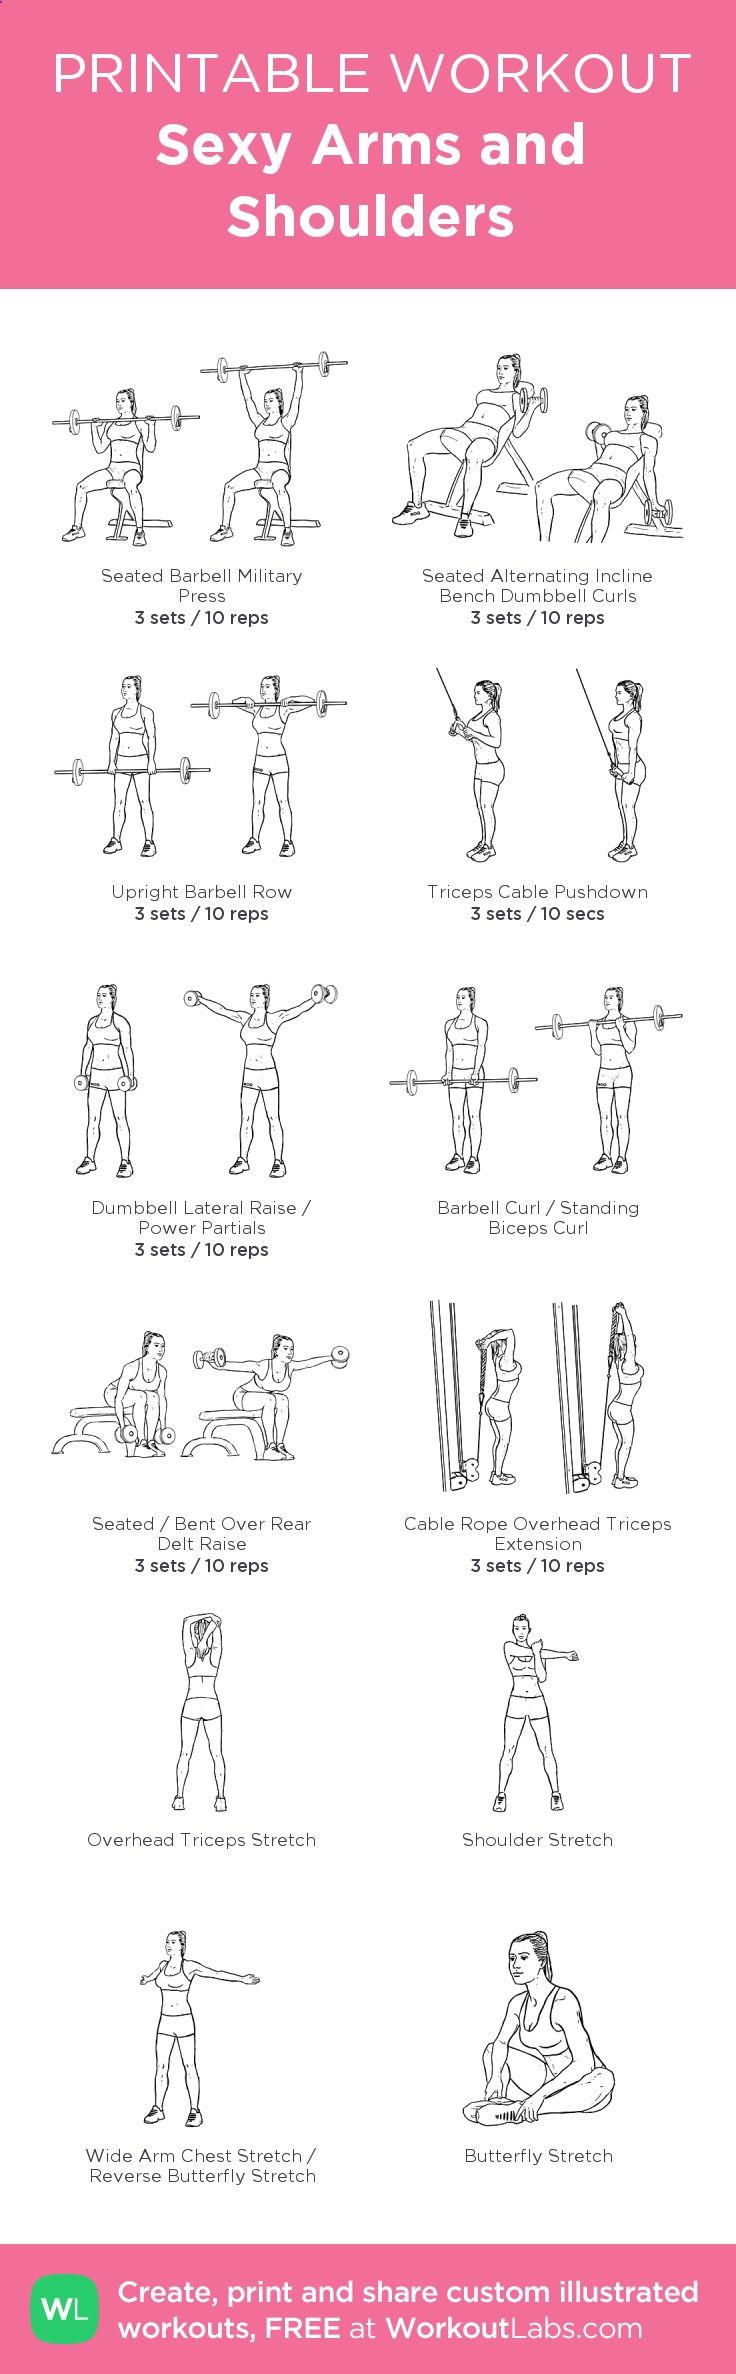 Sexy Arms and Shoulders:my visual workout created at WorkoutLabs.com • Click through to customize and download as a FREE PDF! #customworkout